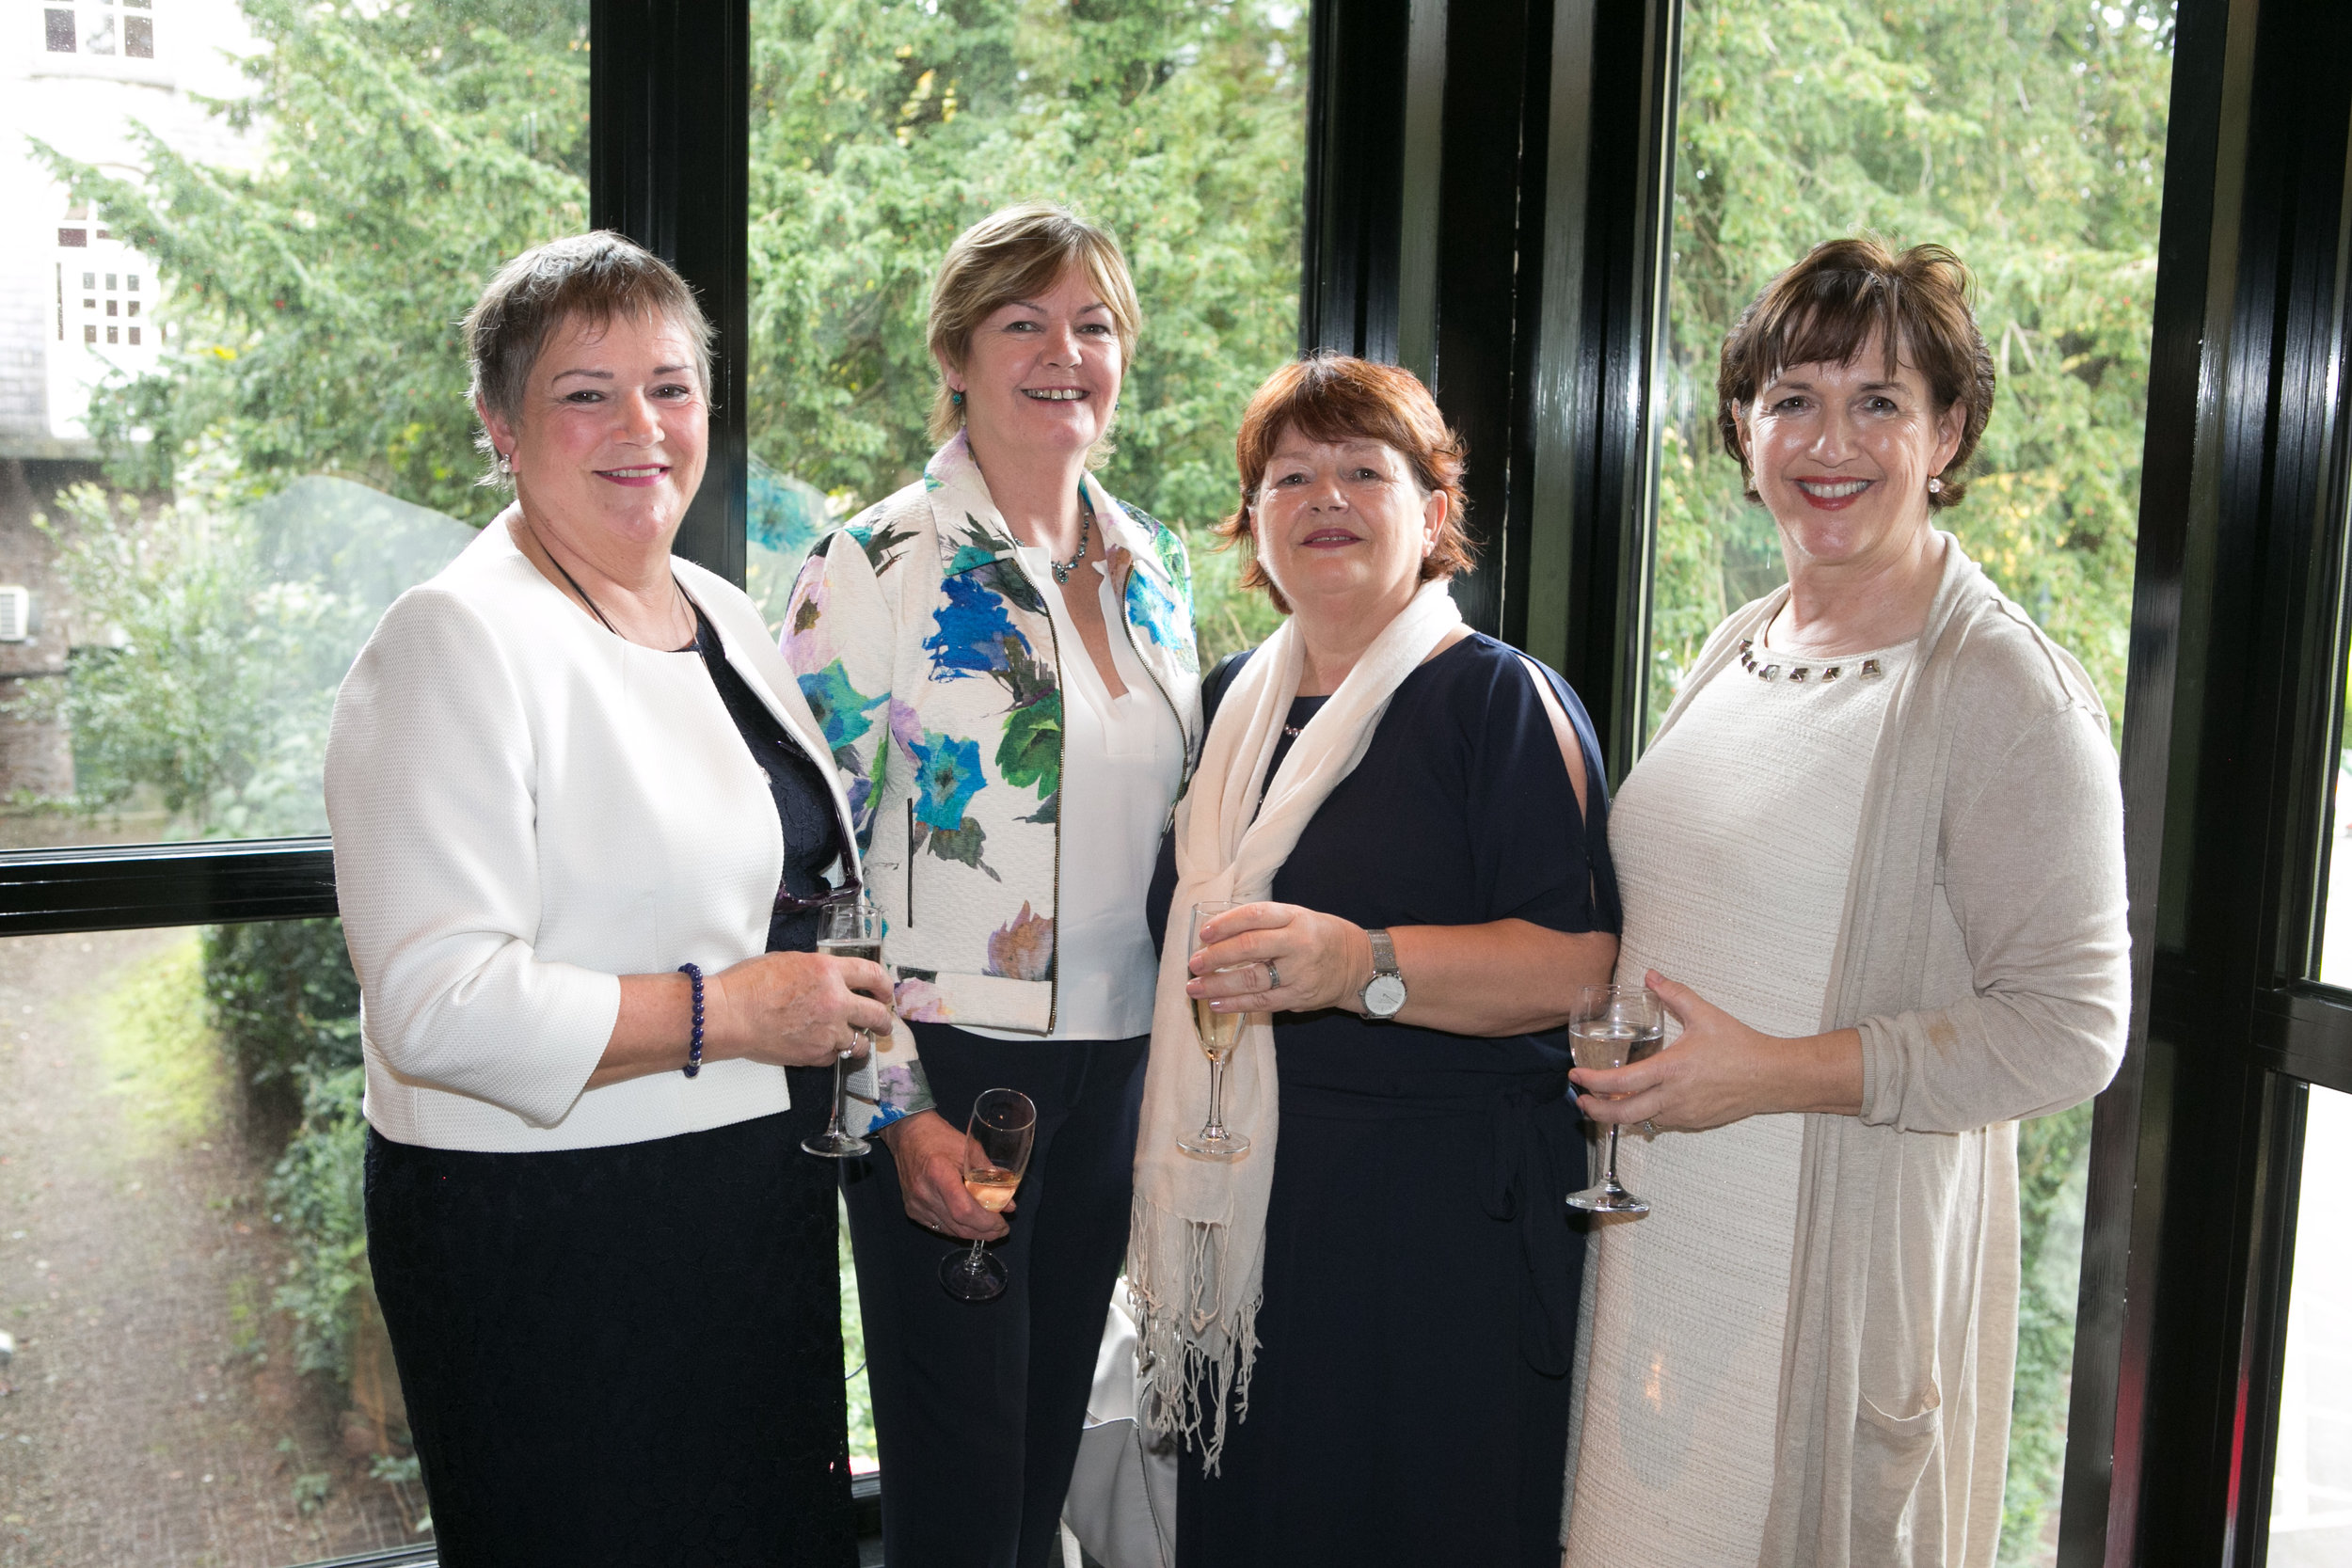 Siobhan Coughlan, Ballinlough, Norma Harrington, Beaumount, Carol Harrington, Beaumount ansd Betty McNulty, Ovens at the Annual Aer Lingus Autumn Lunch in aid of Cork ARC Cancer Support House.